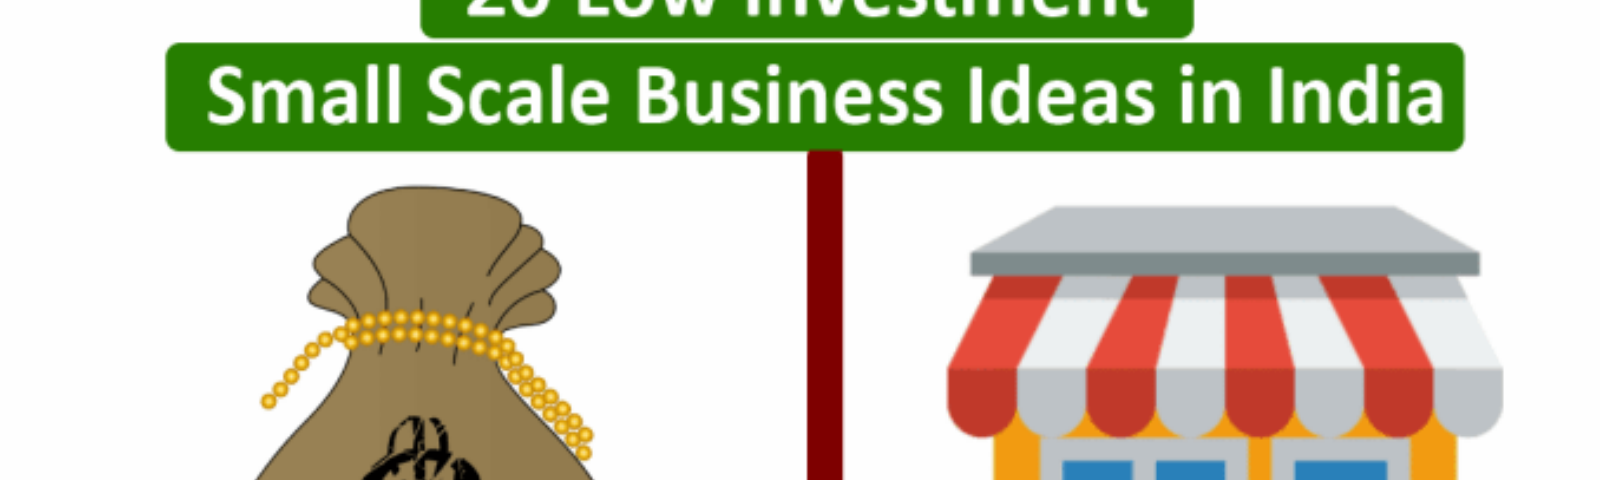 20 Low Investment Small Scale Business Ideas in India